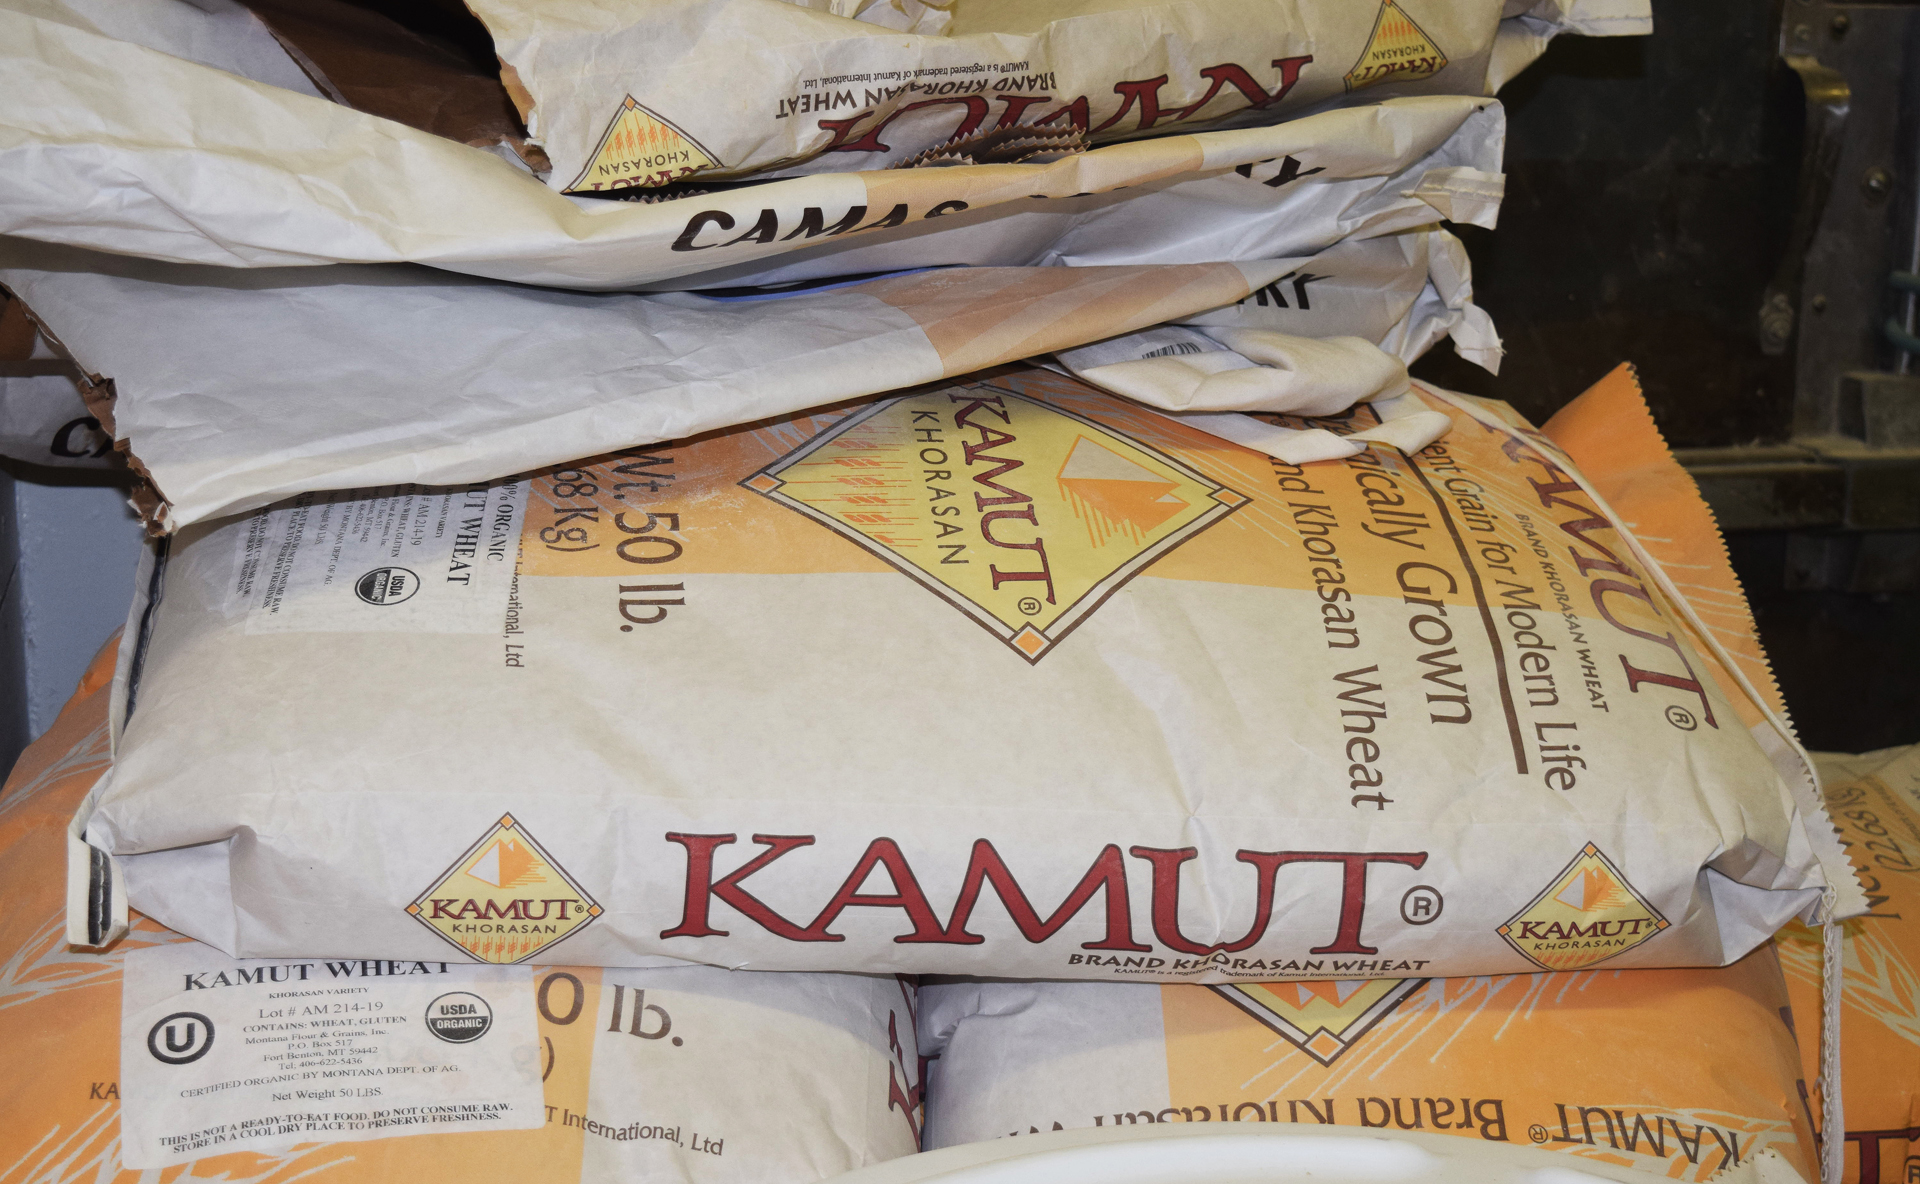 The kamut ground at the bakery is from khorasan, an ancient grain that predates modern durum wheat.